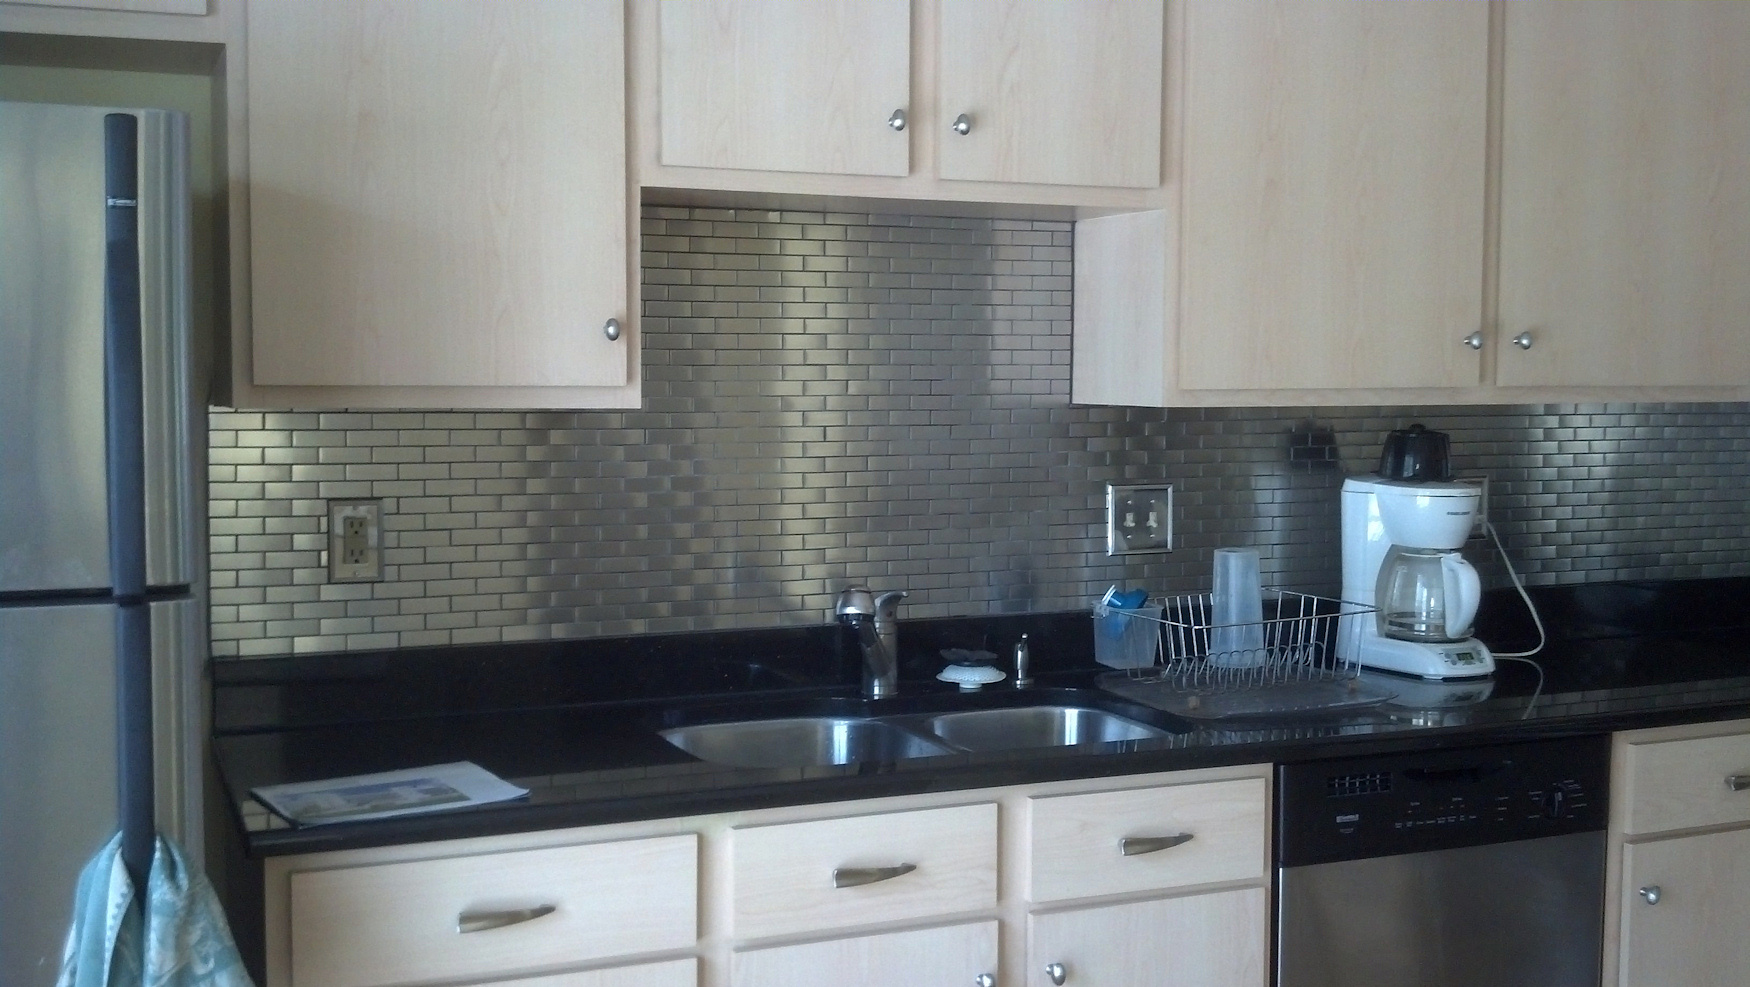 Modern ikea stainless steel backsplash homesfeed - Kitchen tile backsplash photos ...